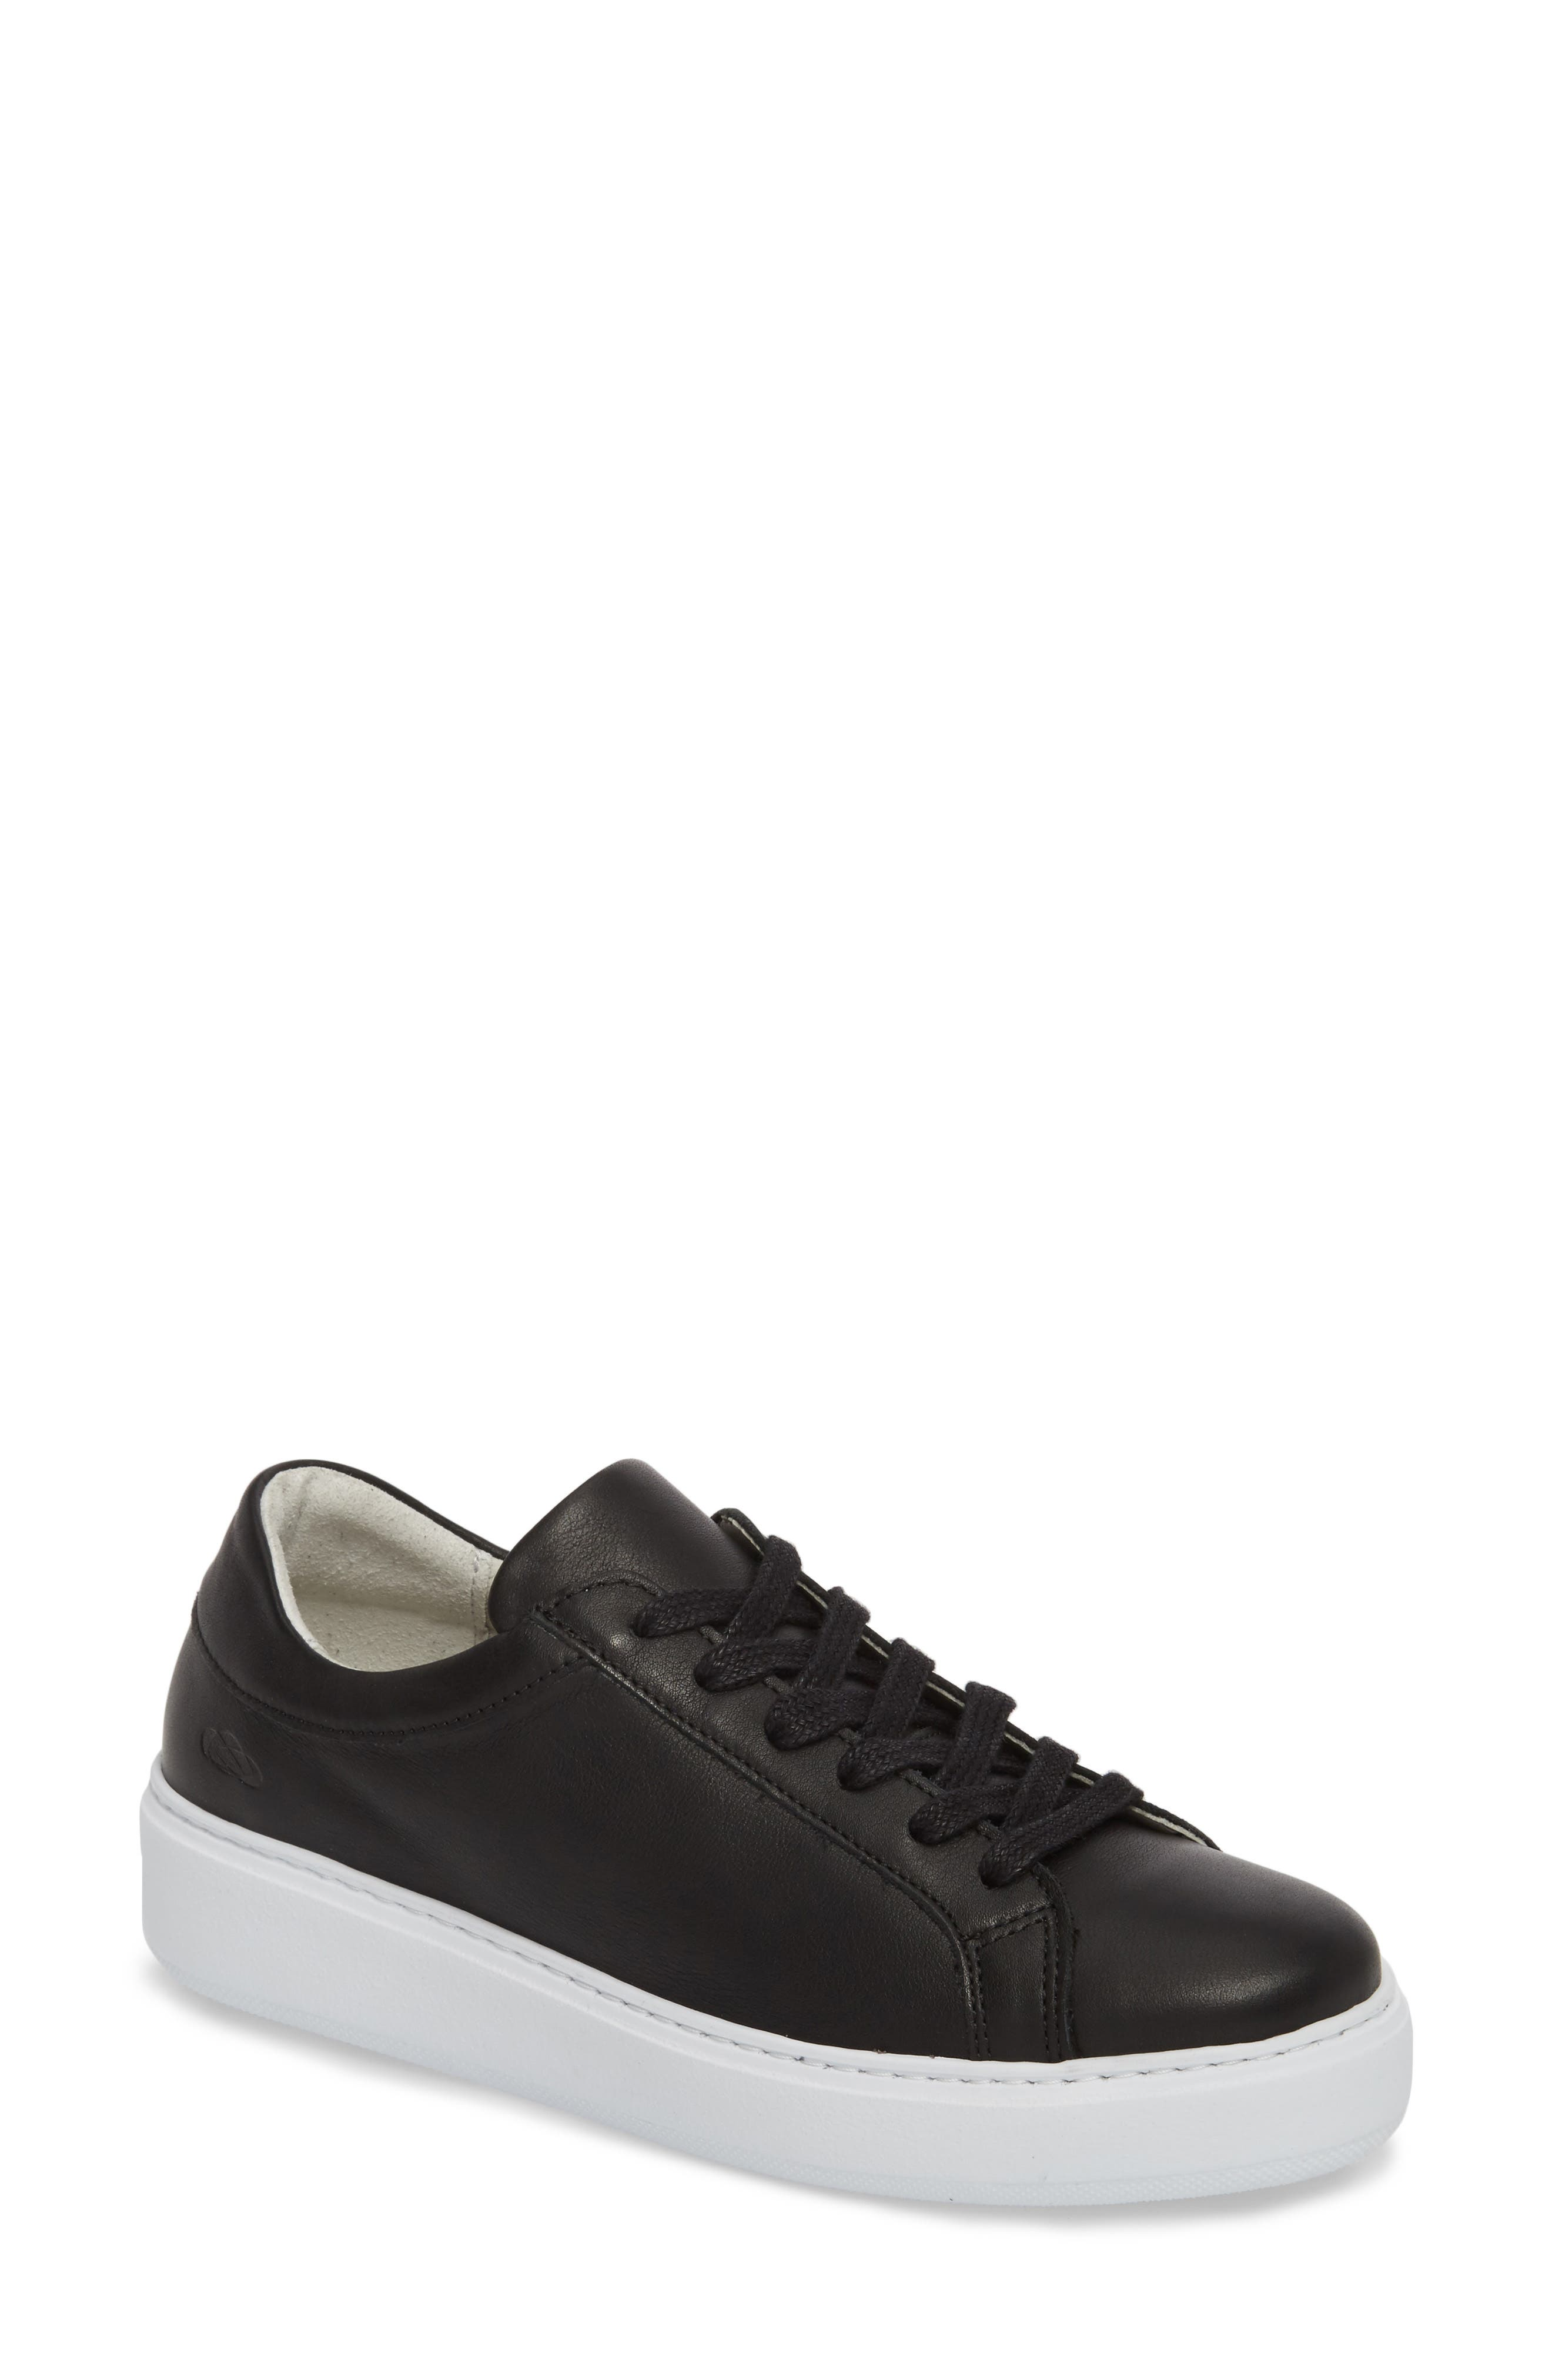 CLOUD Tully Sneaker, Main, color, 001